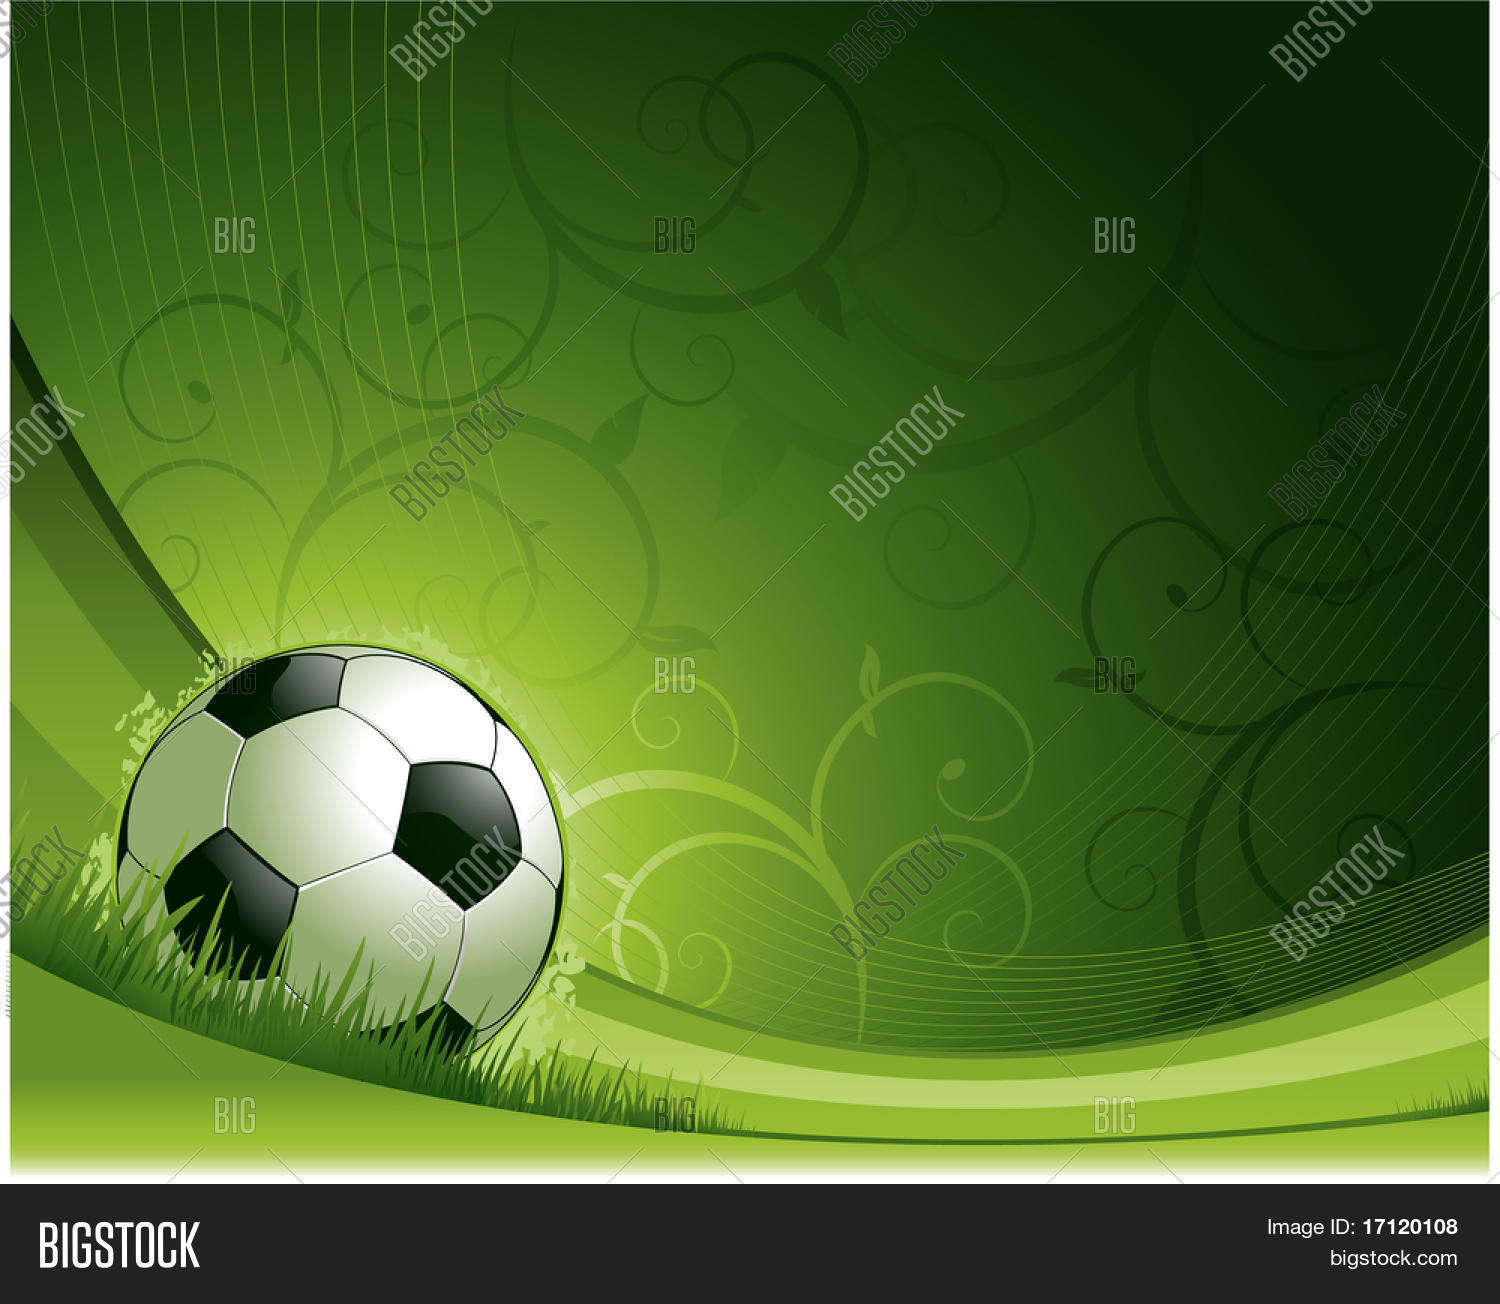 football background images illustrations